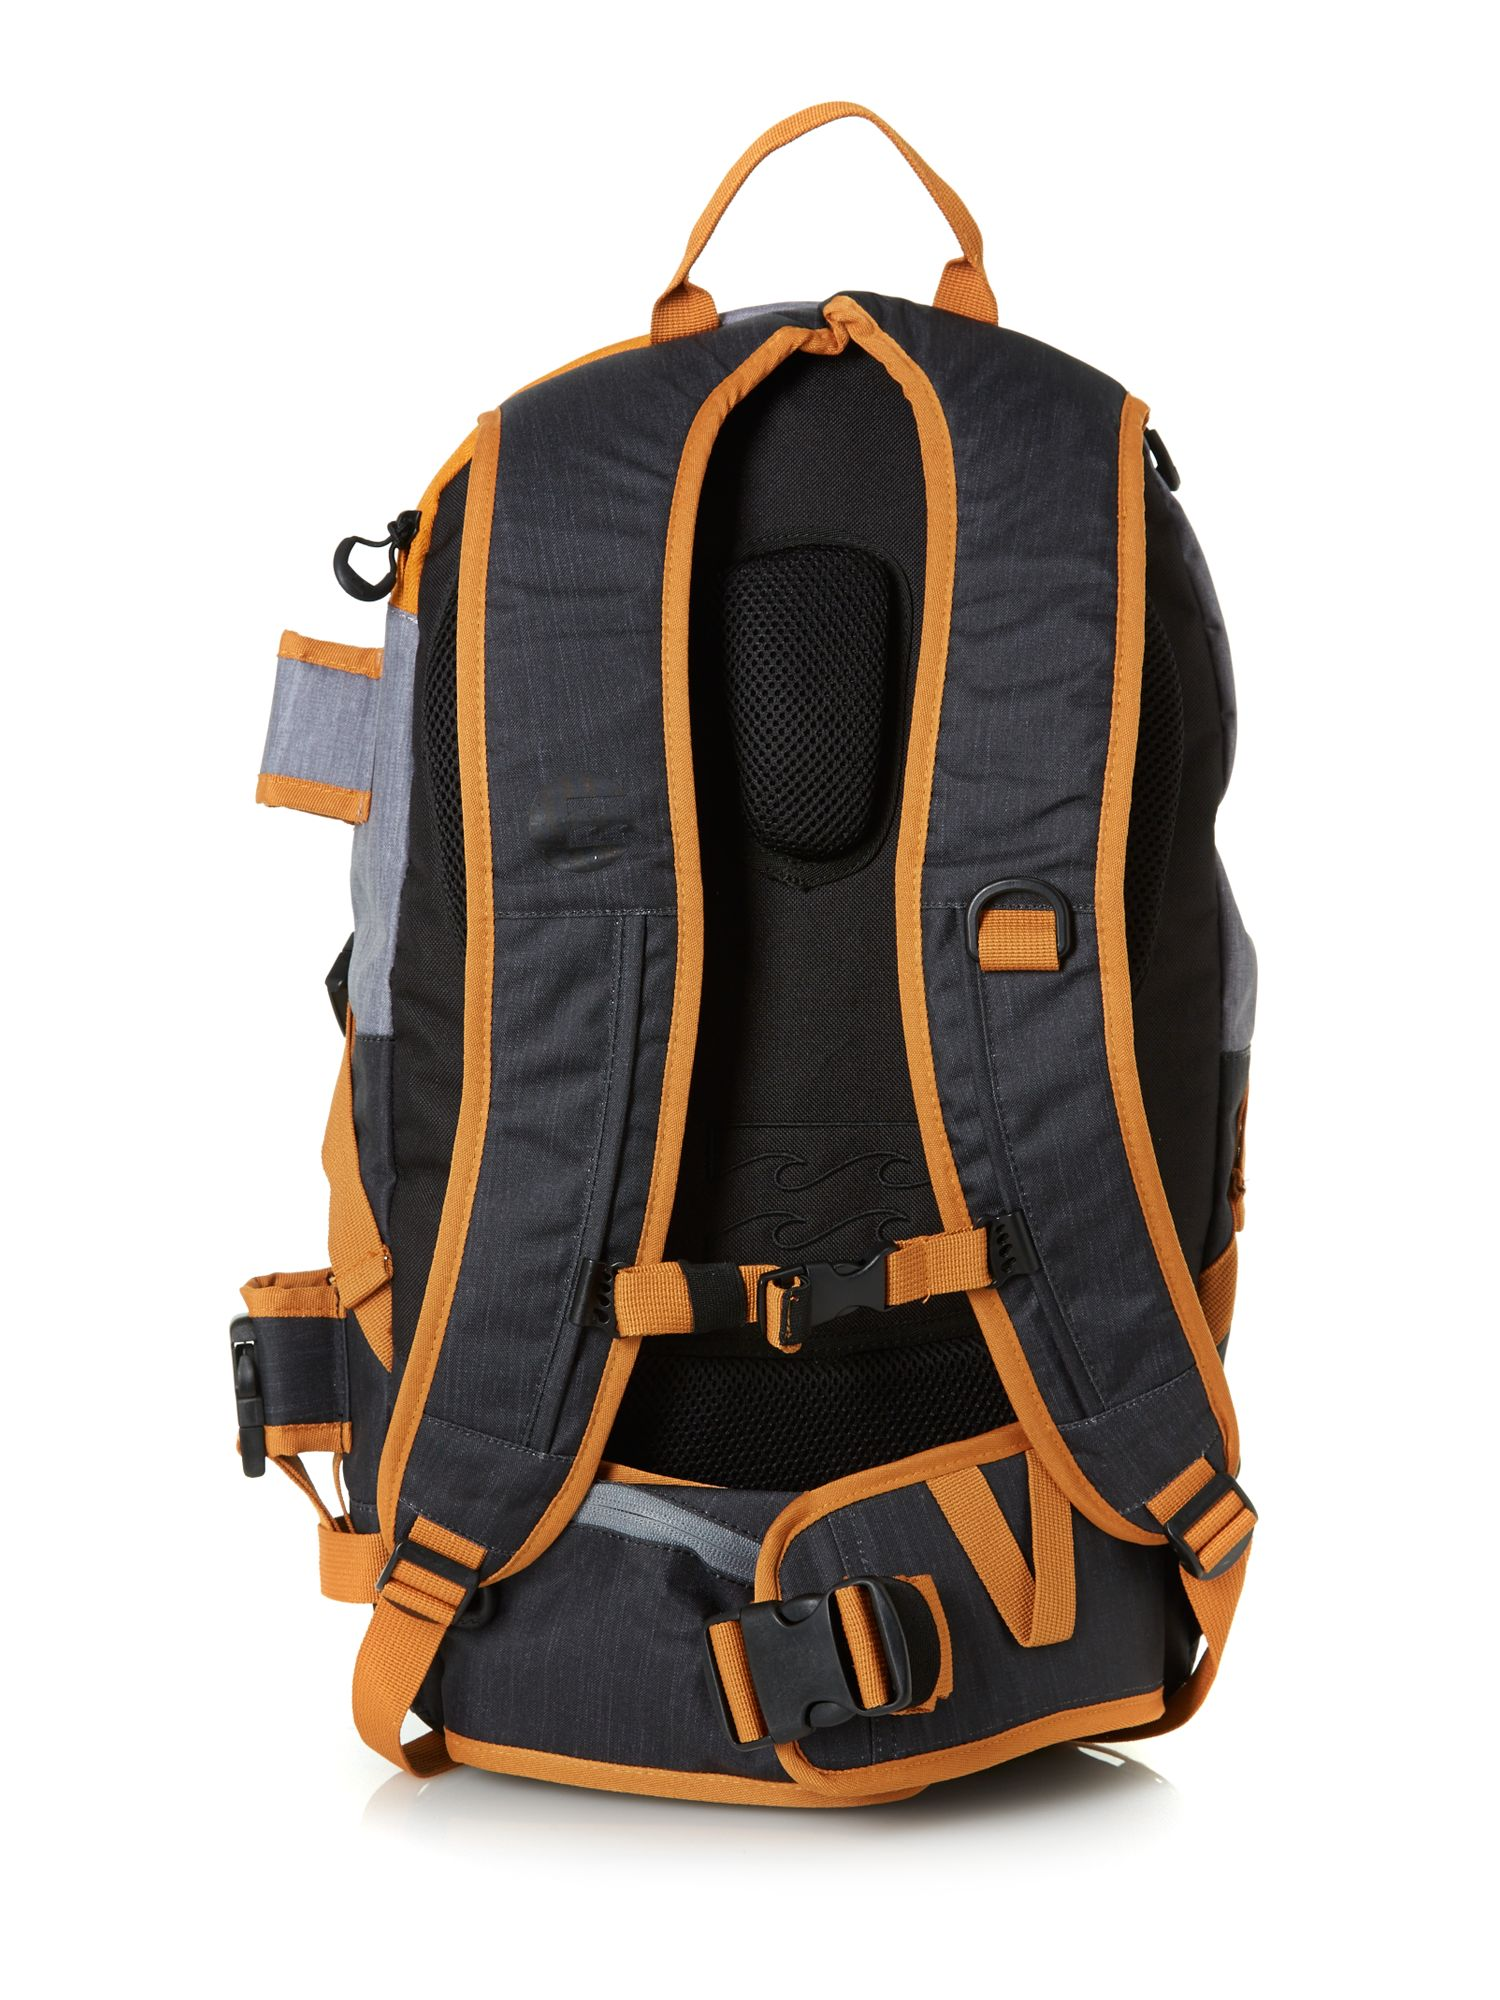 Prima backpack